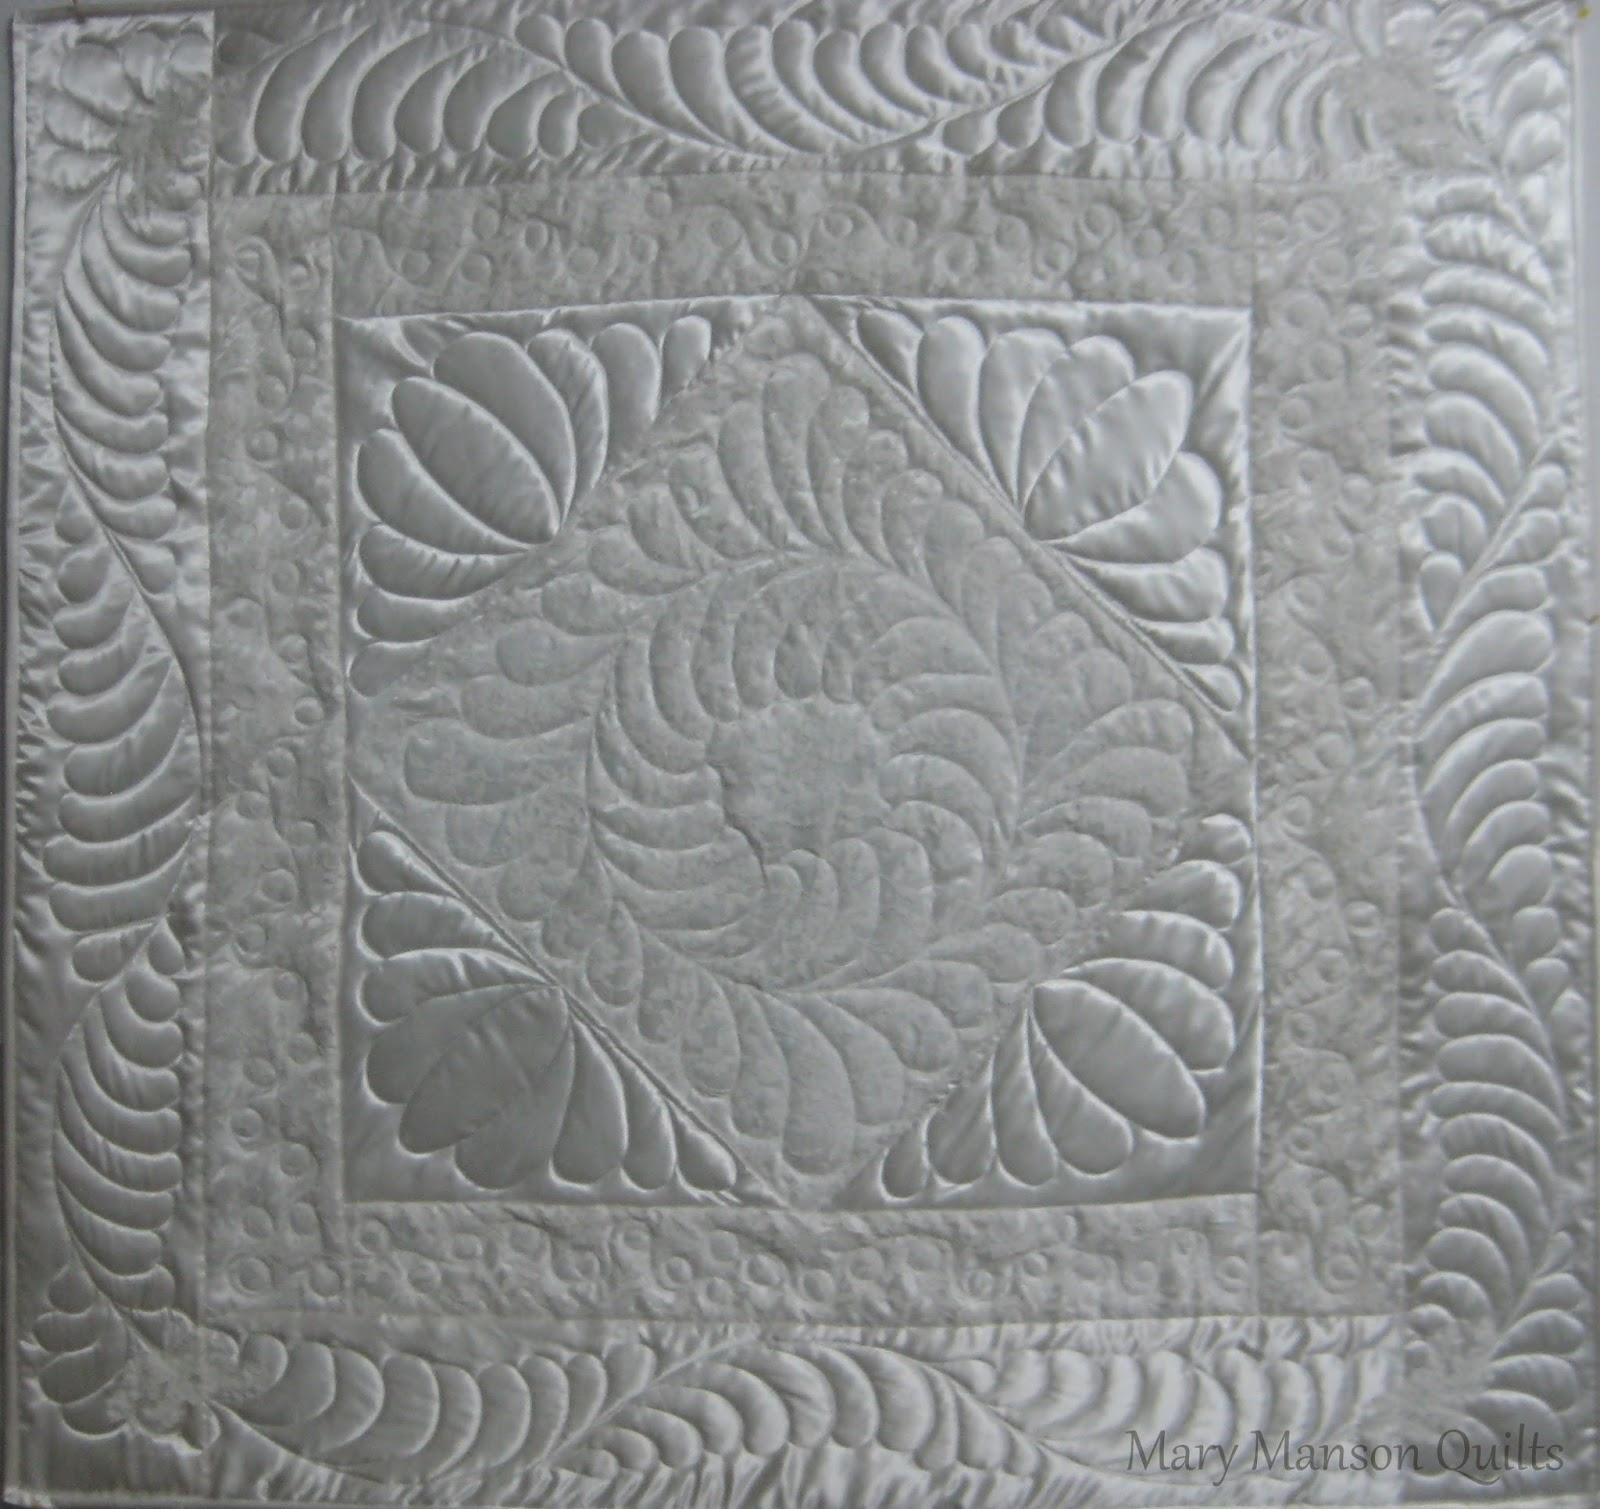 Mary Manson Quilts: Wedding Dress/Special Occasion Quilts : wedding dress quilts - Adamdwight.com